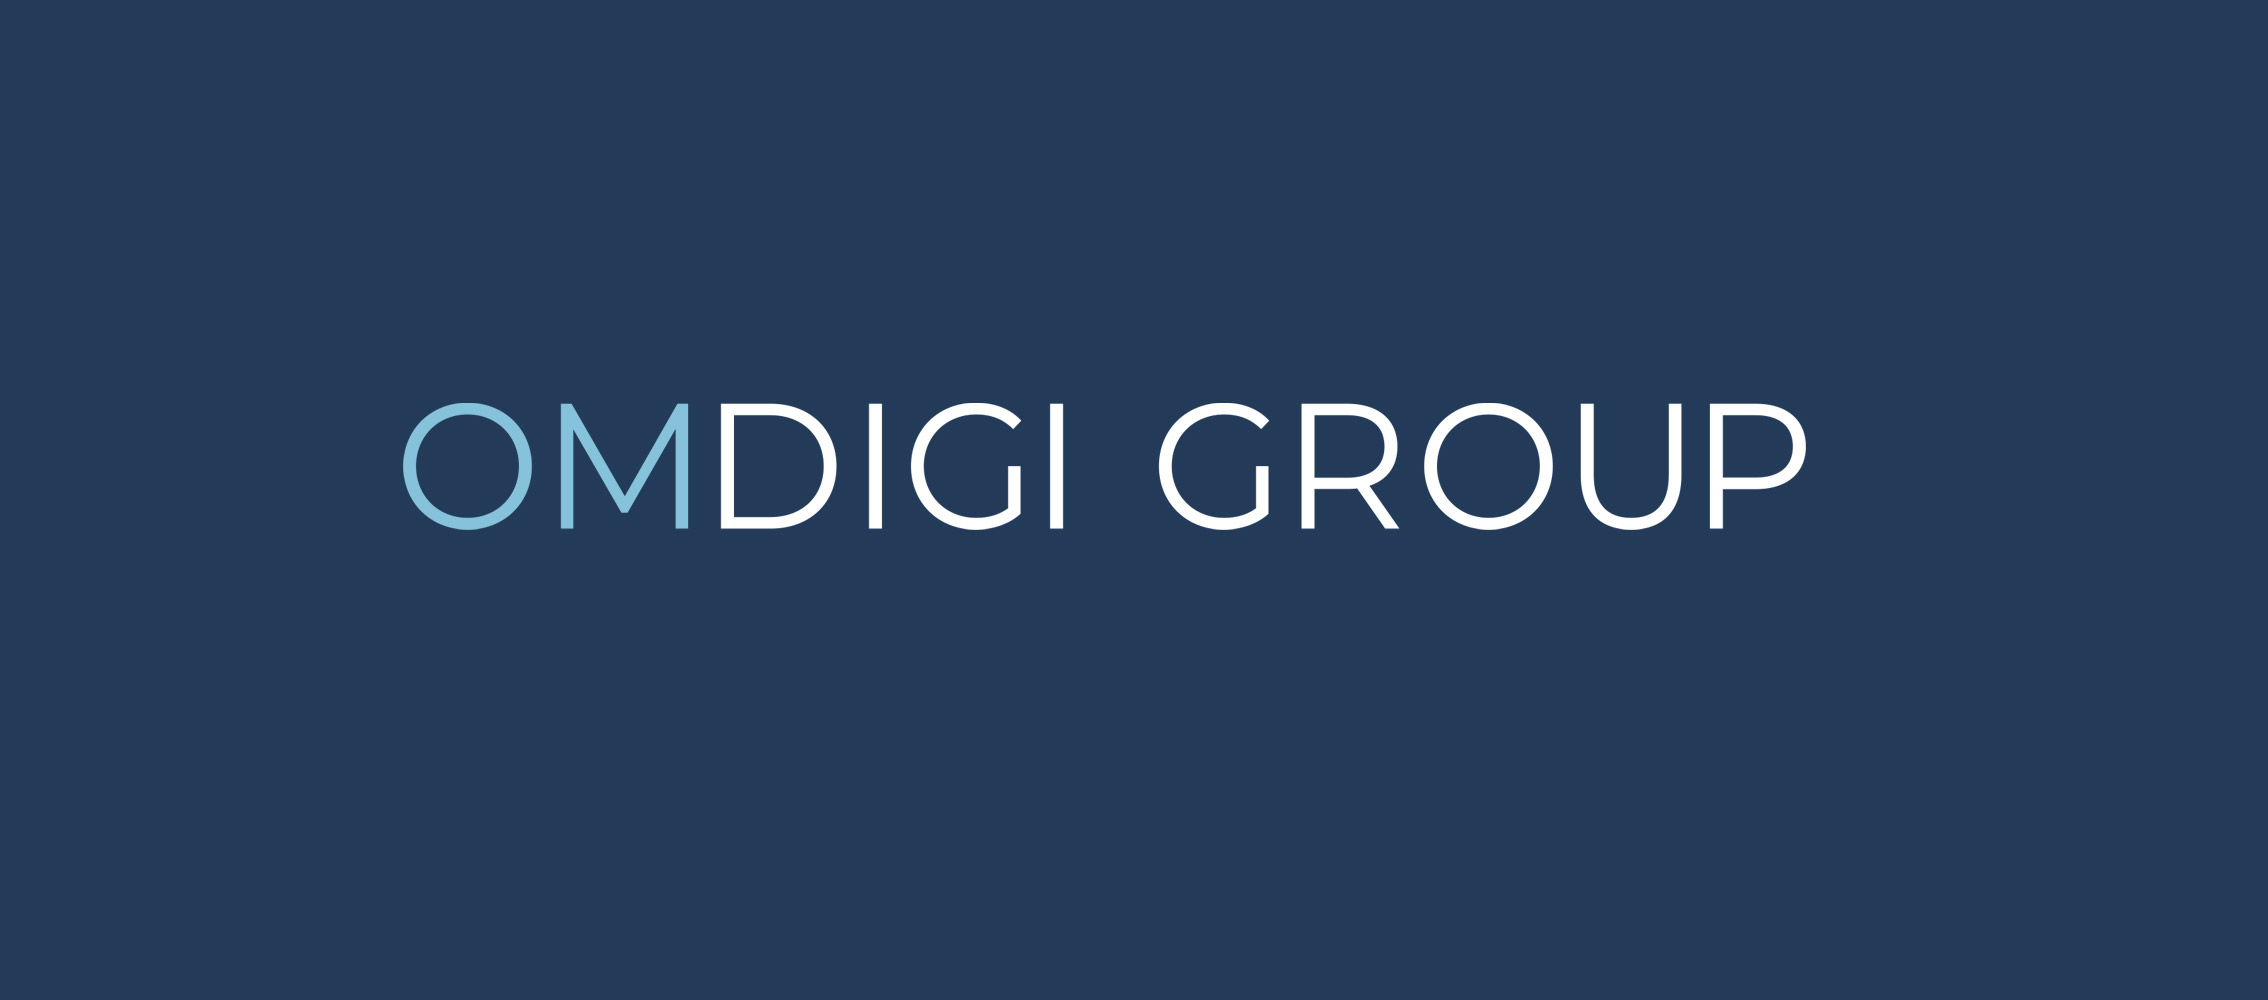 OMDIGI Group Logo Design